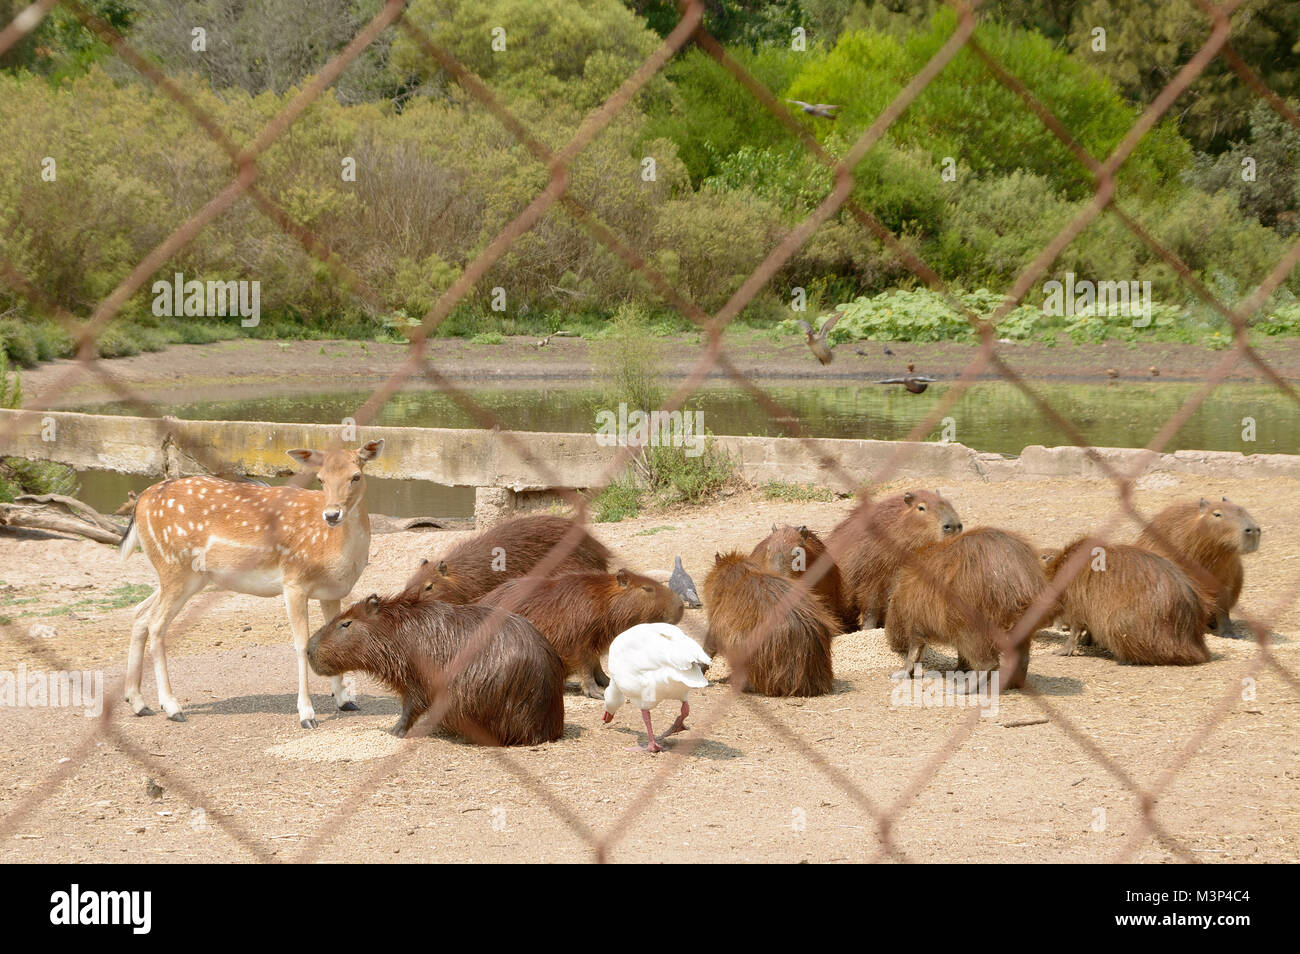 protected animals in the natural reserve, Montevideo Uruguay Stock Photo